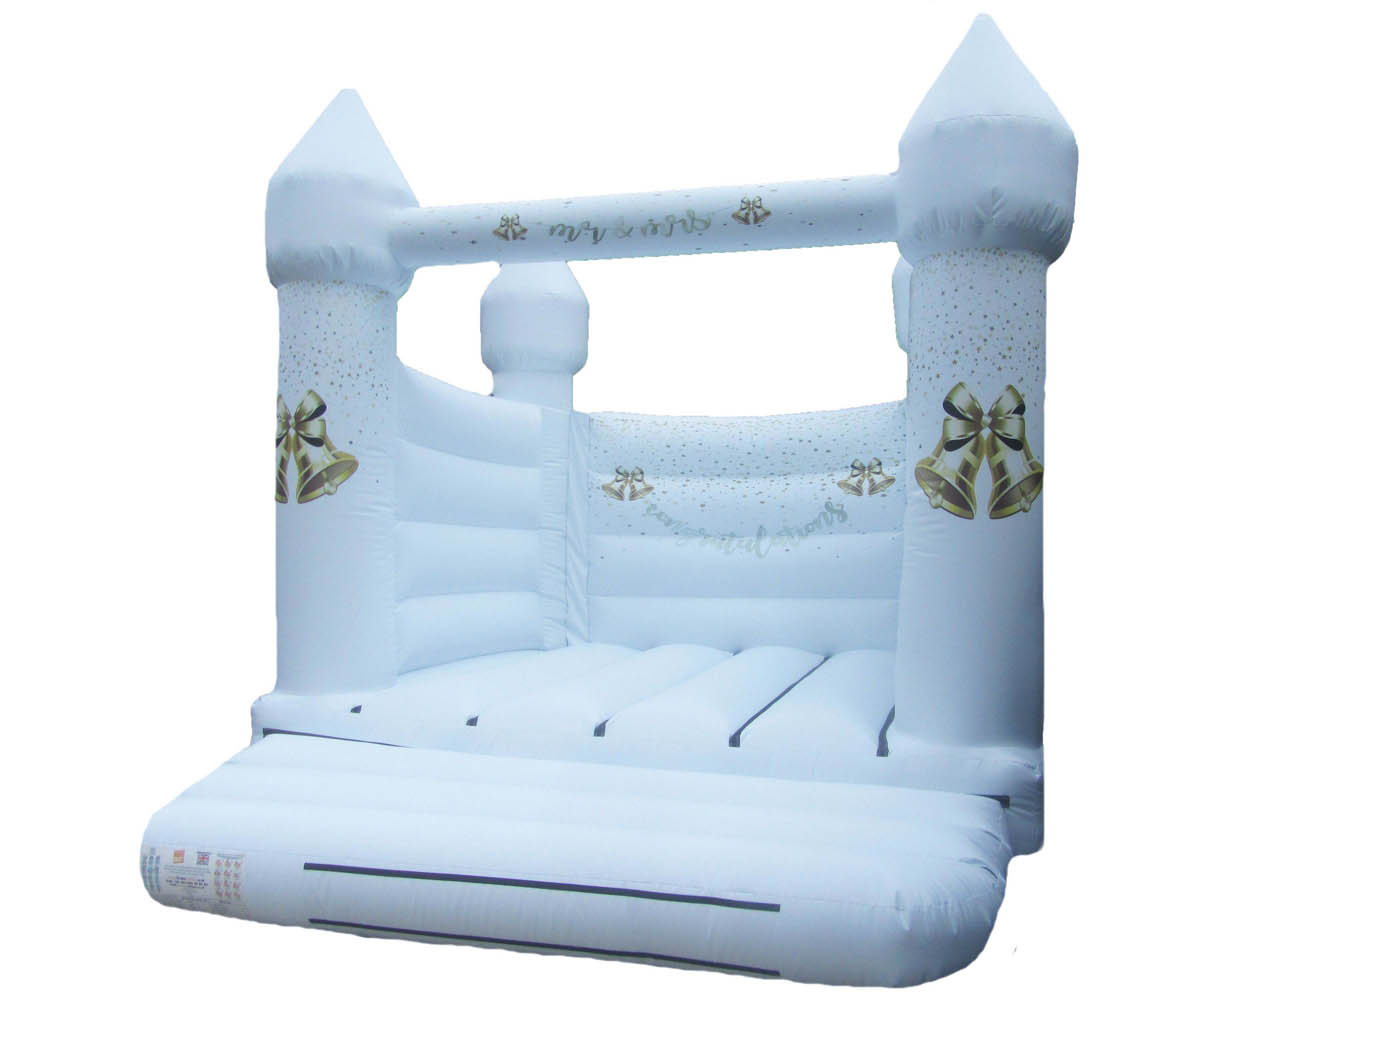 Commercial Wedding Bouncy Castle for Sale